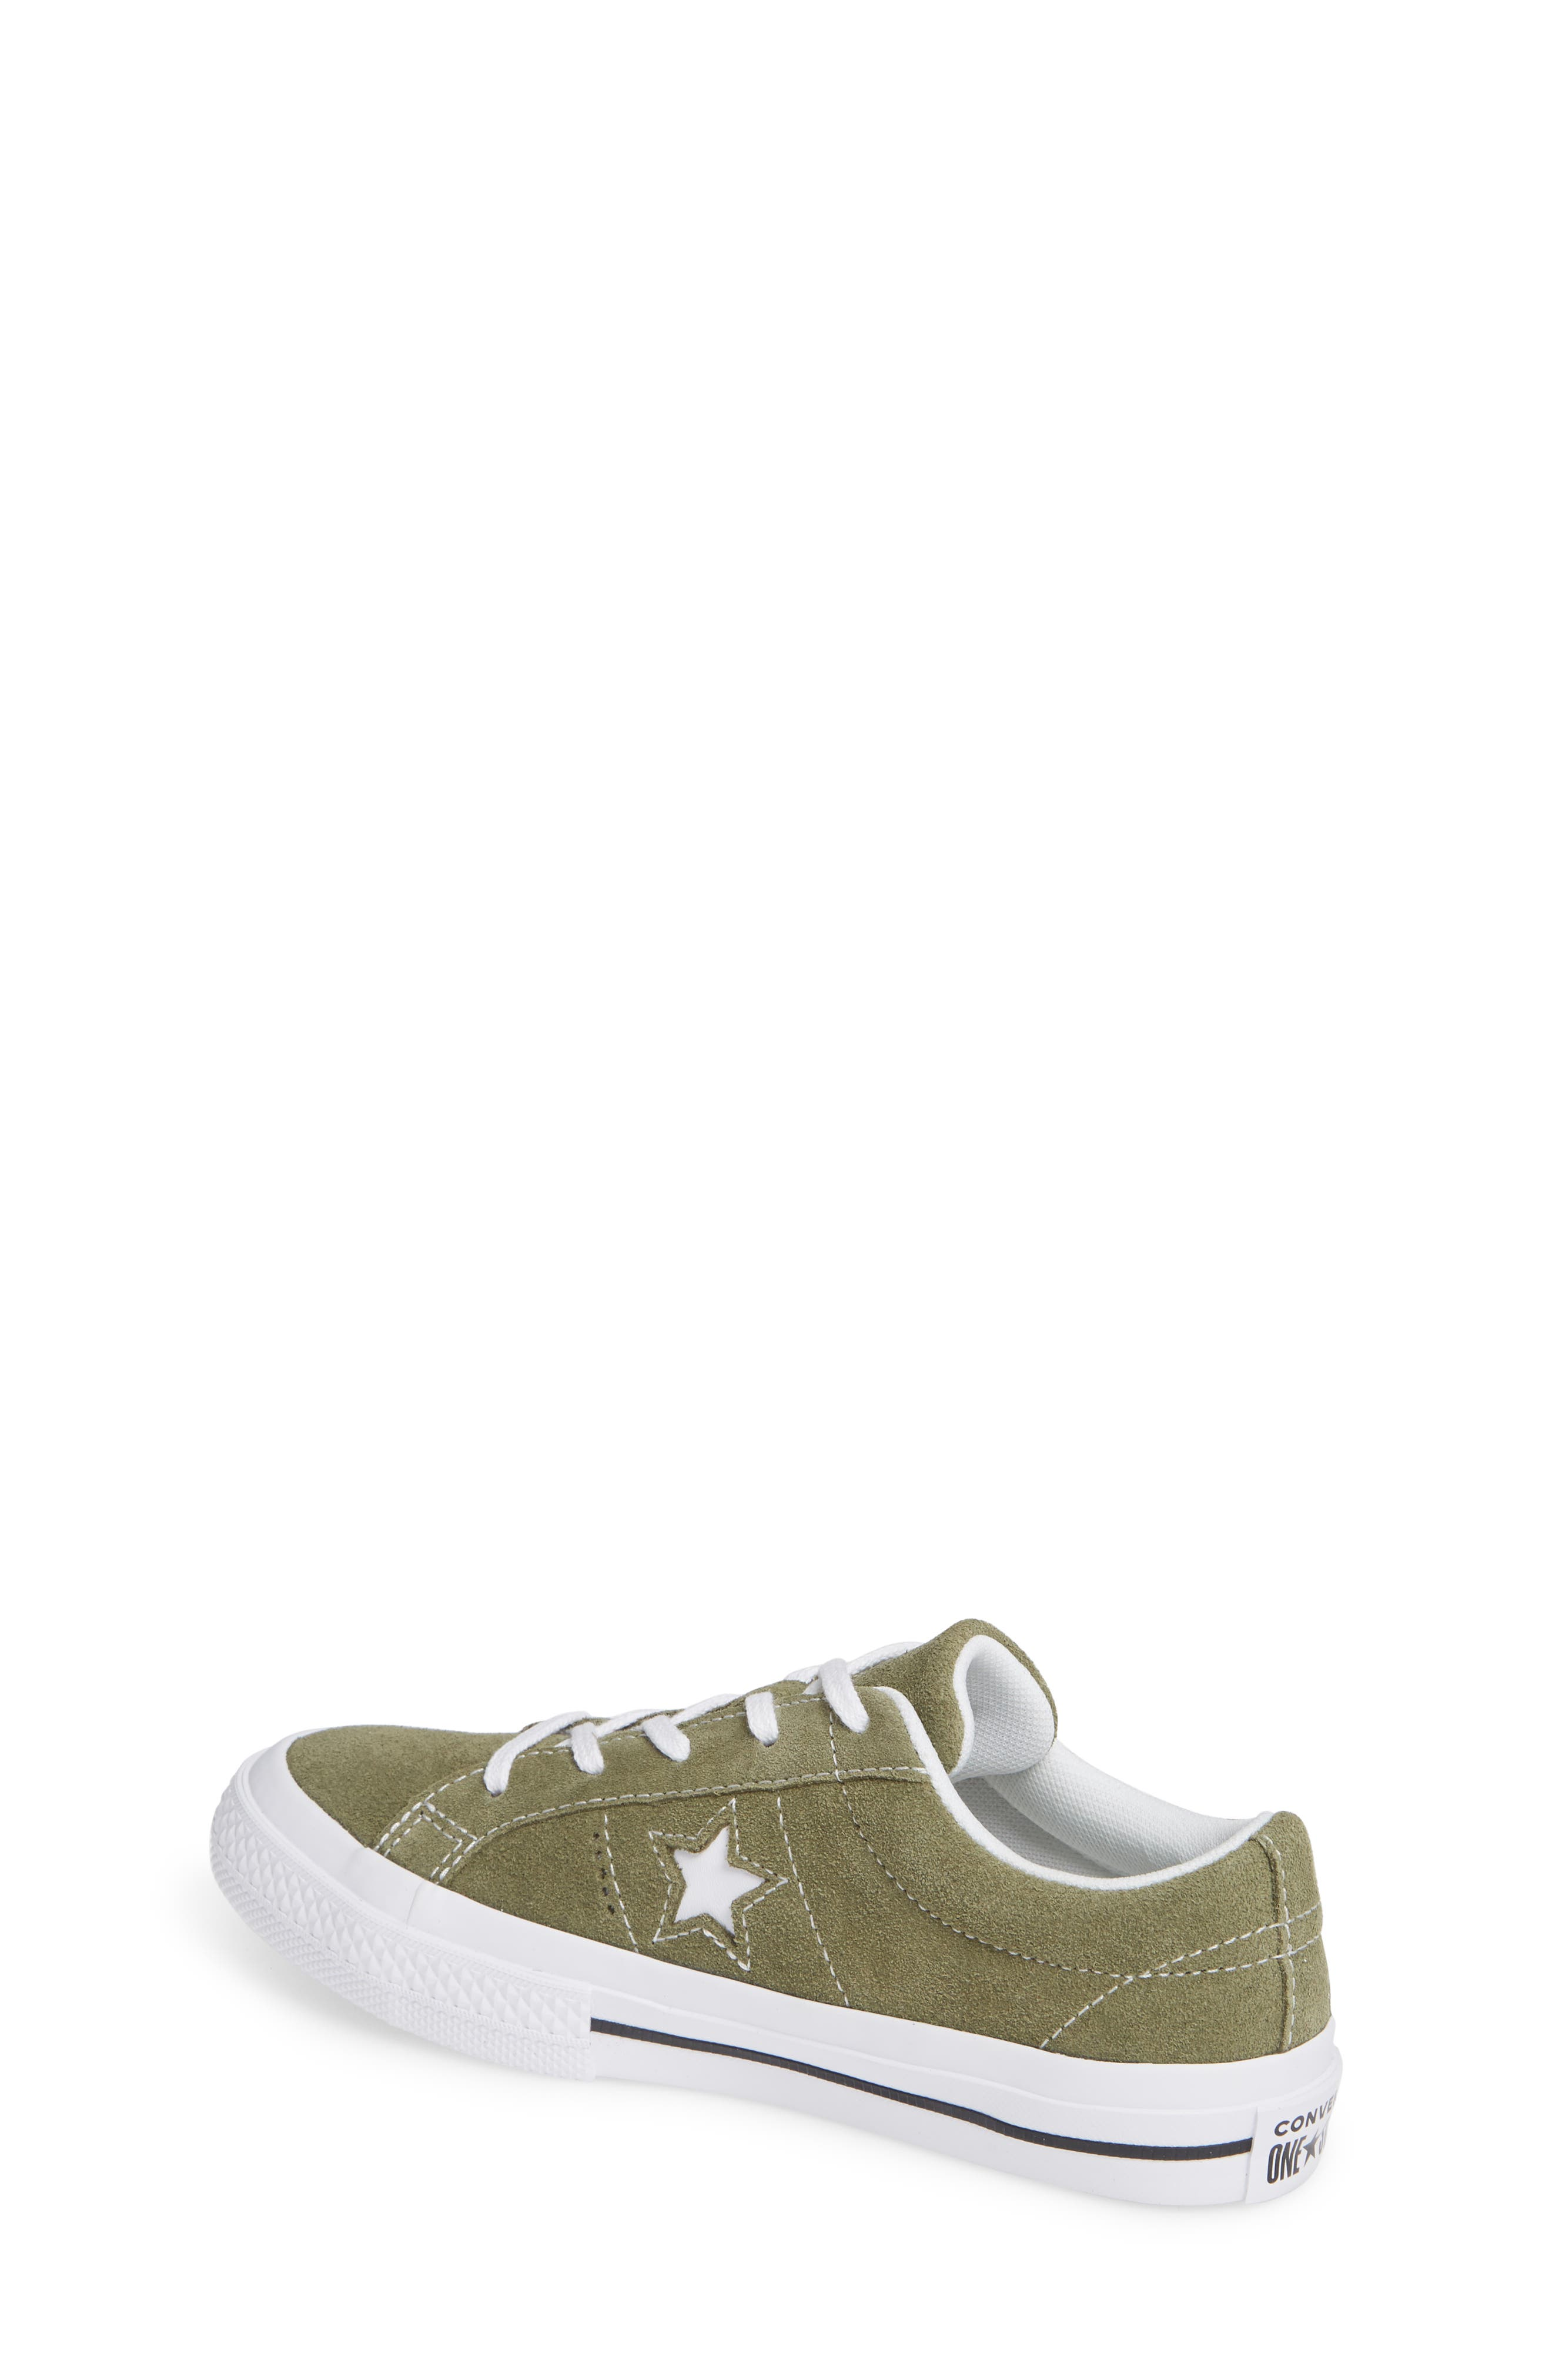 One Star Vintage Suede Low Top Sneaker,                             Alternate thumbnail 2, color,                             322